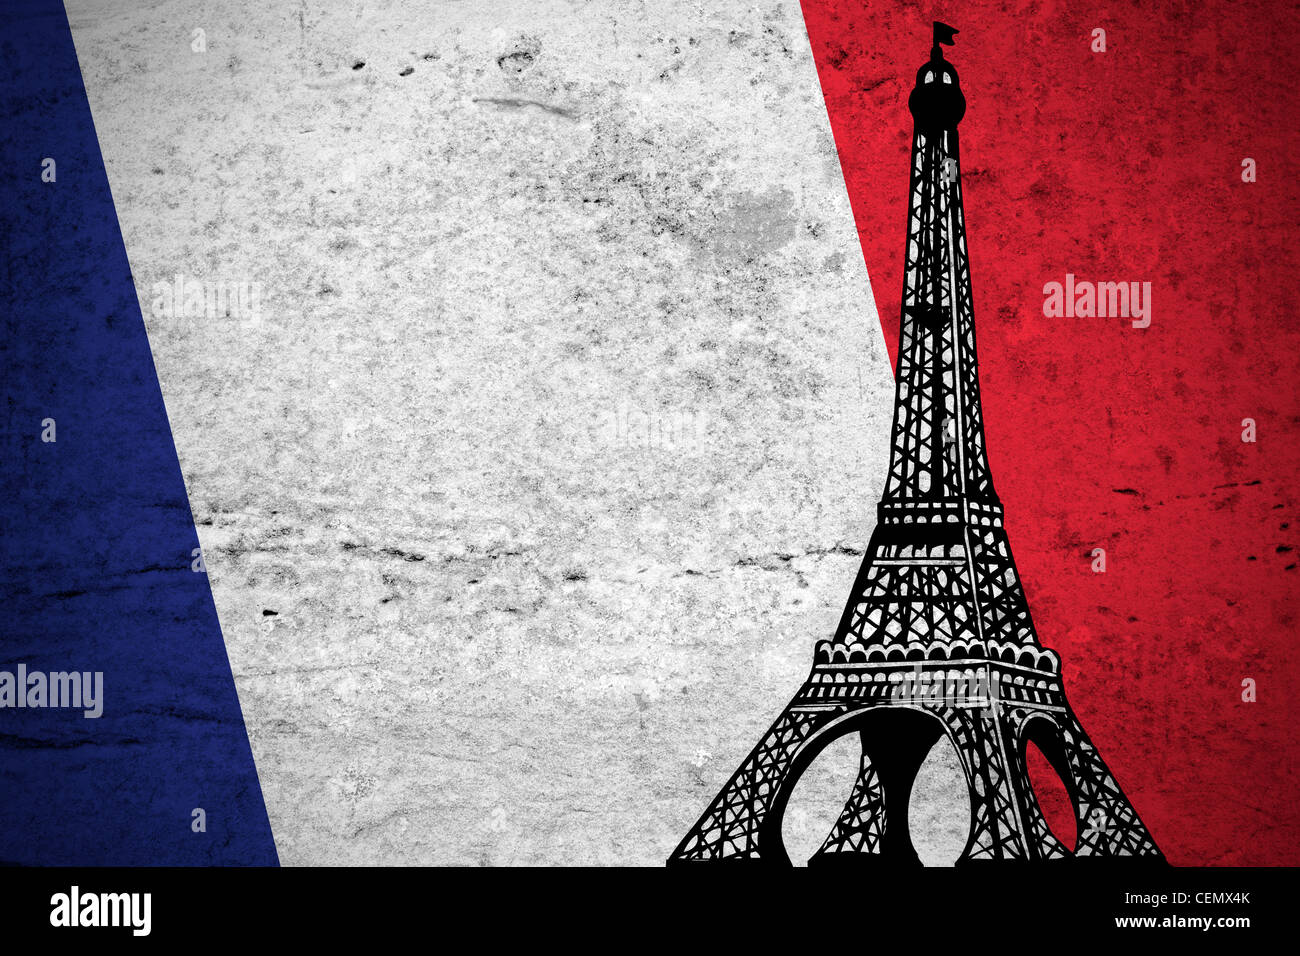 Close view of a grunge French flag illustration with the Eiffel Tower printed. - Stock Image